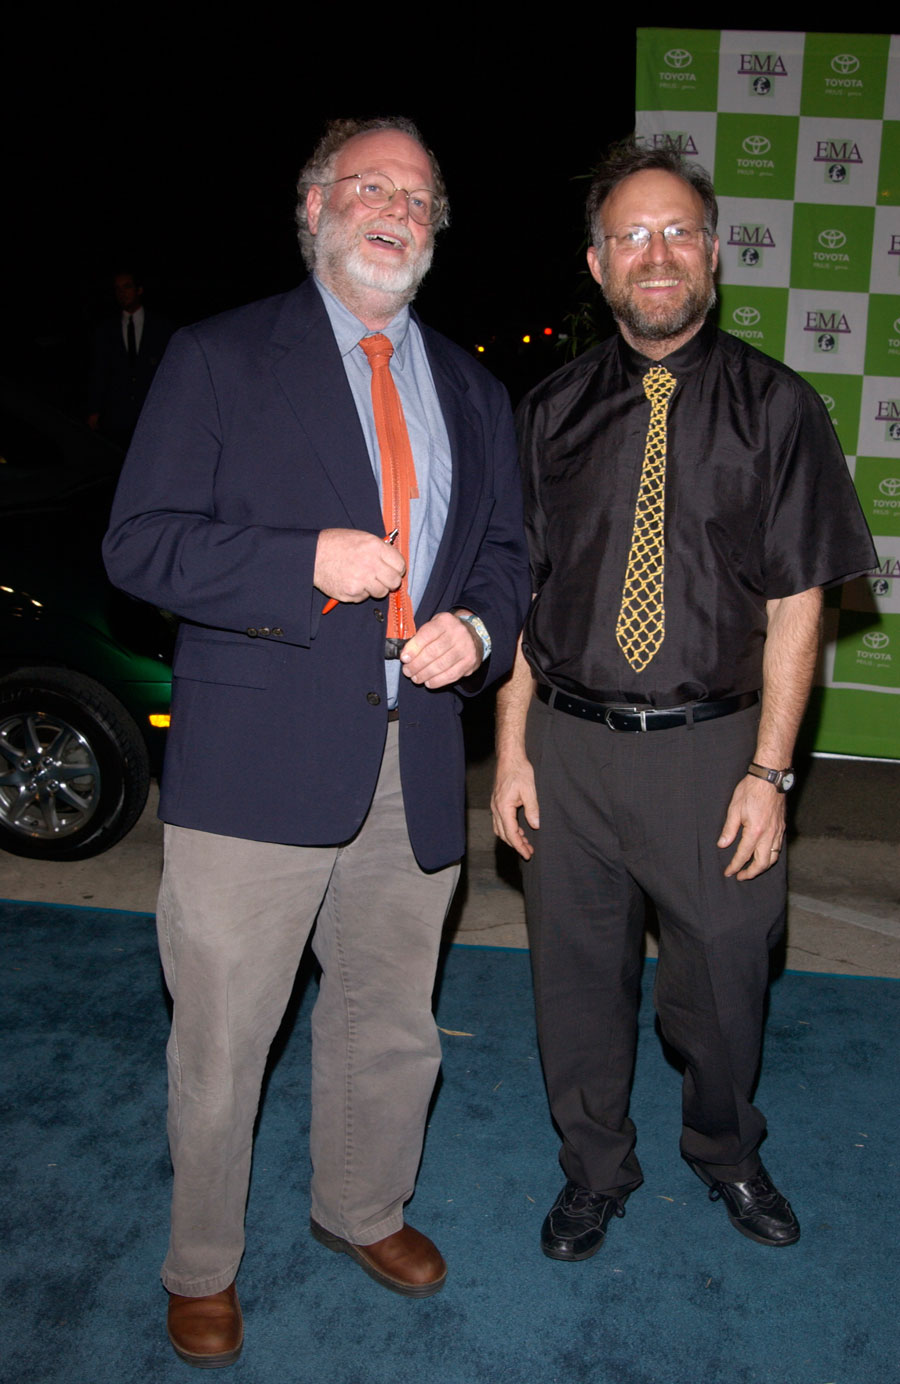 Ice cream makers BEN COHEN (right) & JERRY GREENFIELD at the 12th Annual Environmental Media Awards in Los Angeles. November 2002. File photo: Paul Smith / Feature Flash, Shutterstock.com, licensed.